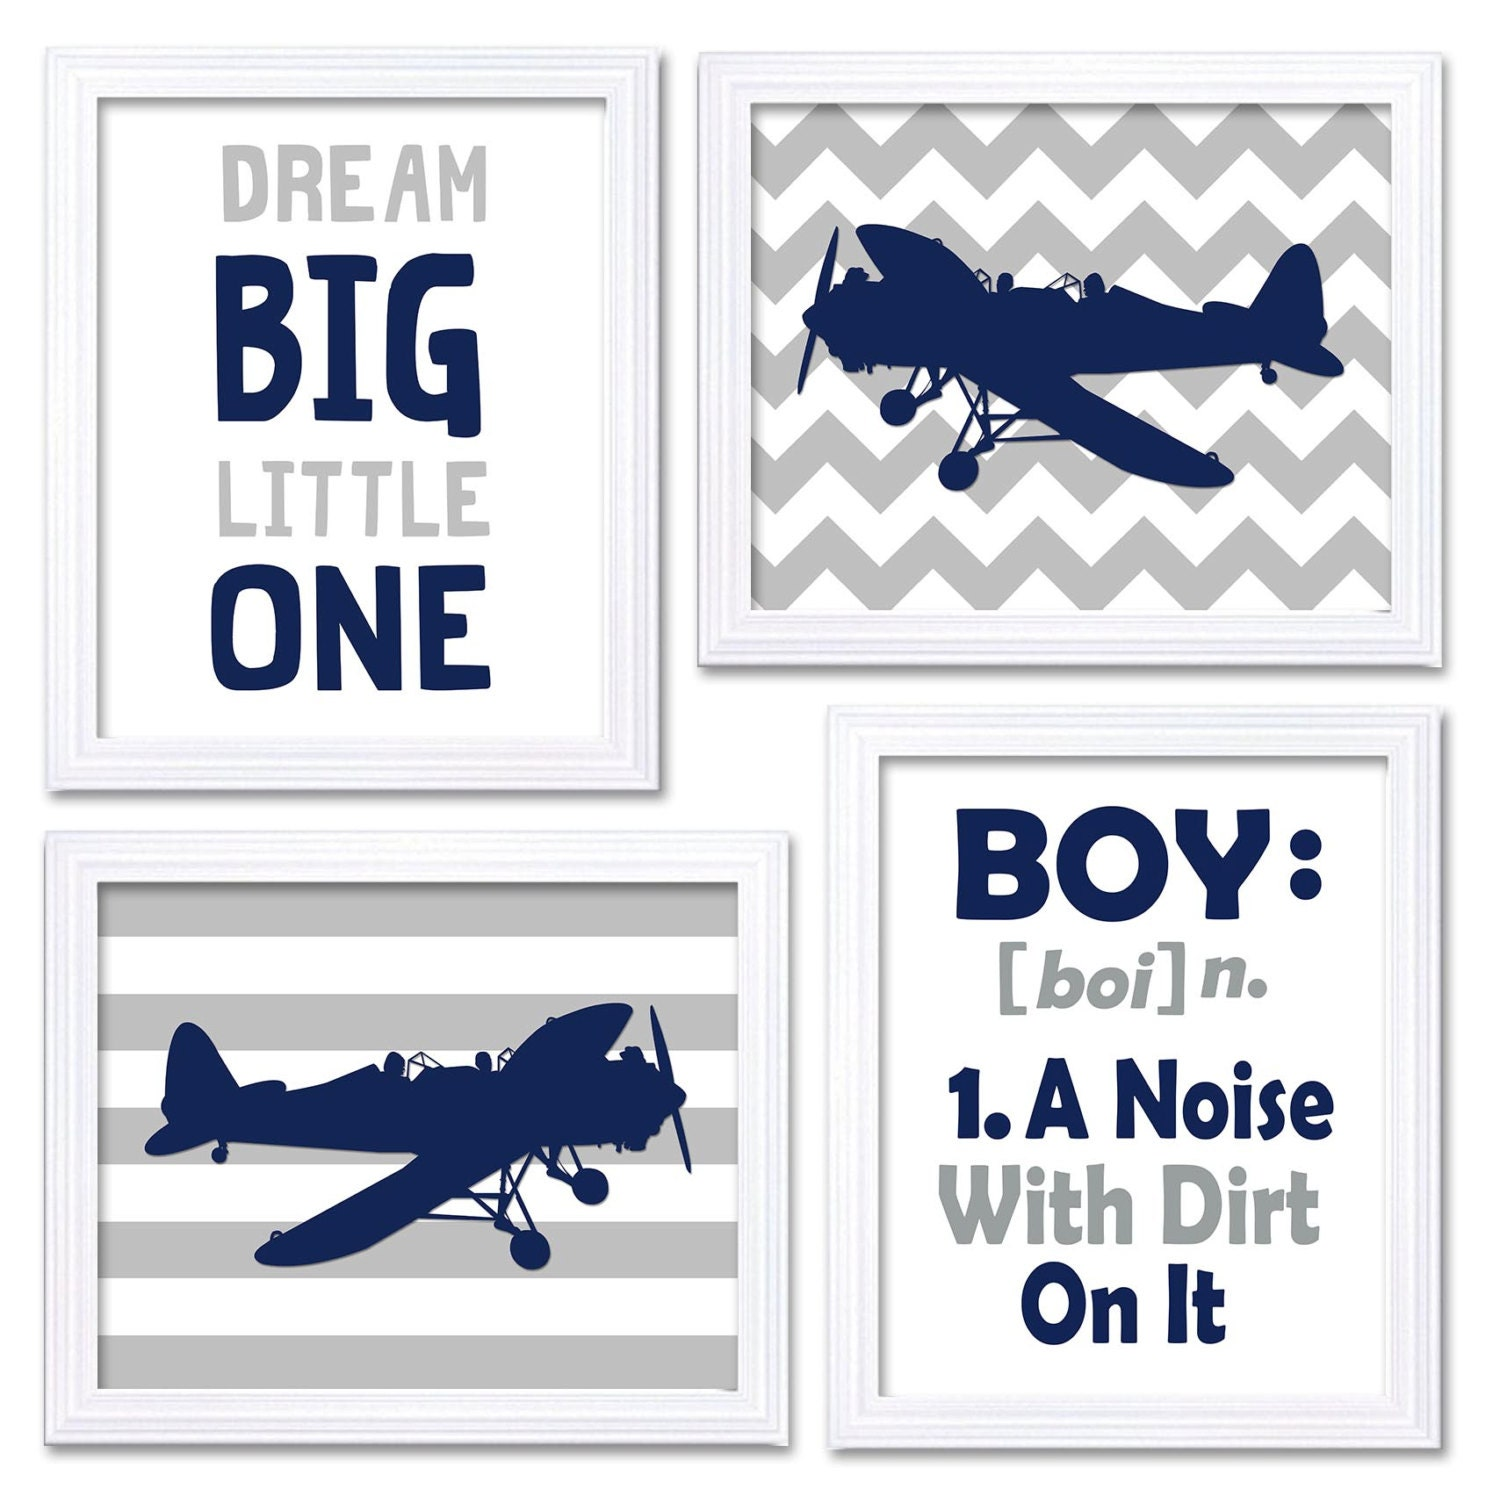 Airplane Nursery Art Navy Grey Nursery Print Set of 4 Transportation Dream Big Little One BOY A Nois